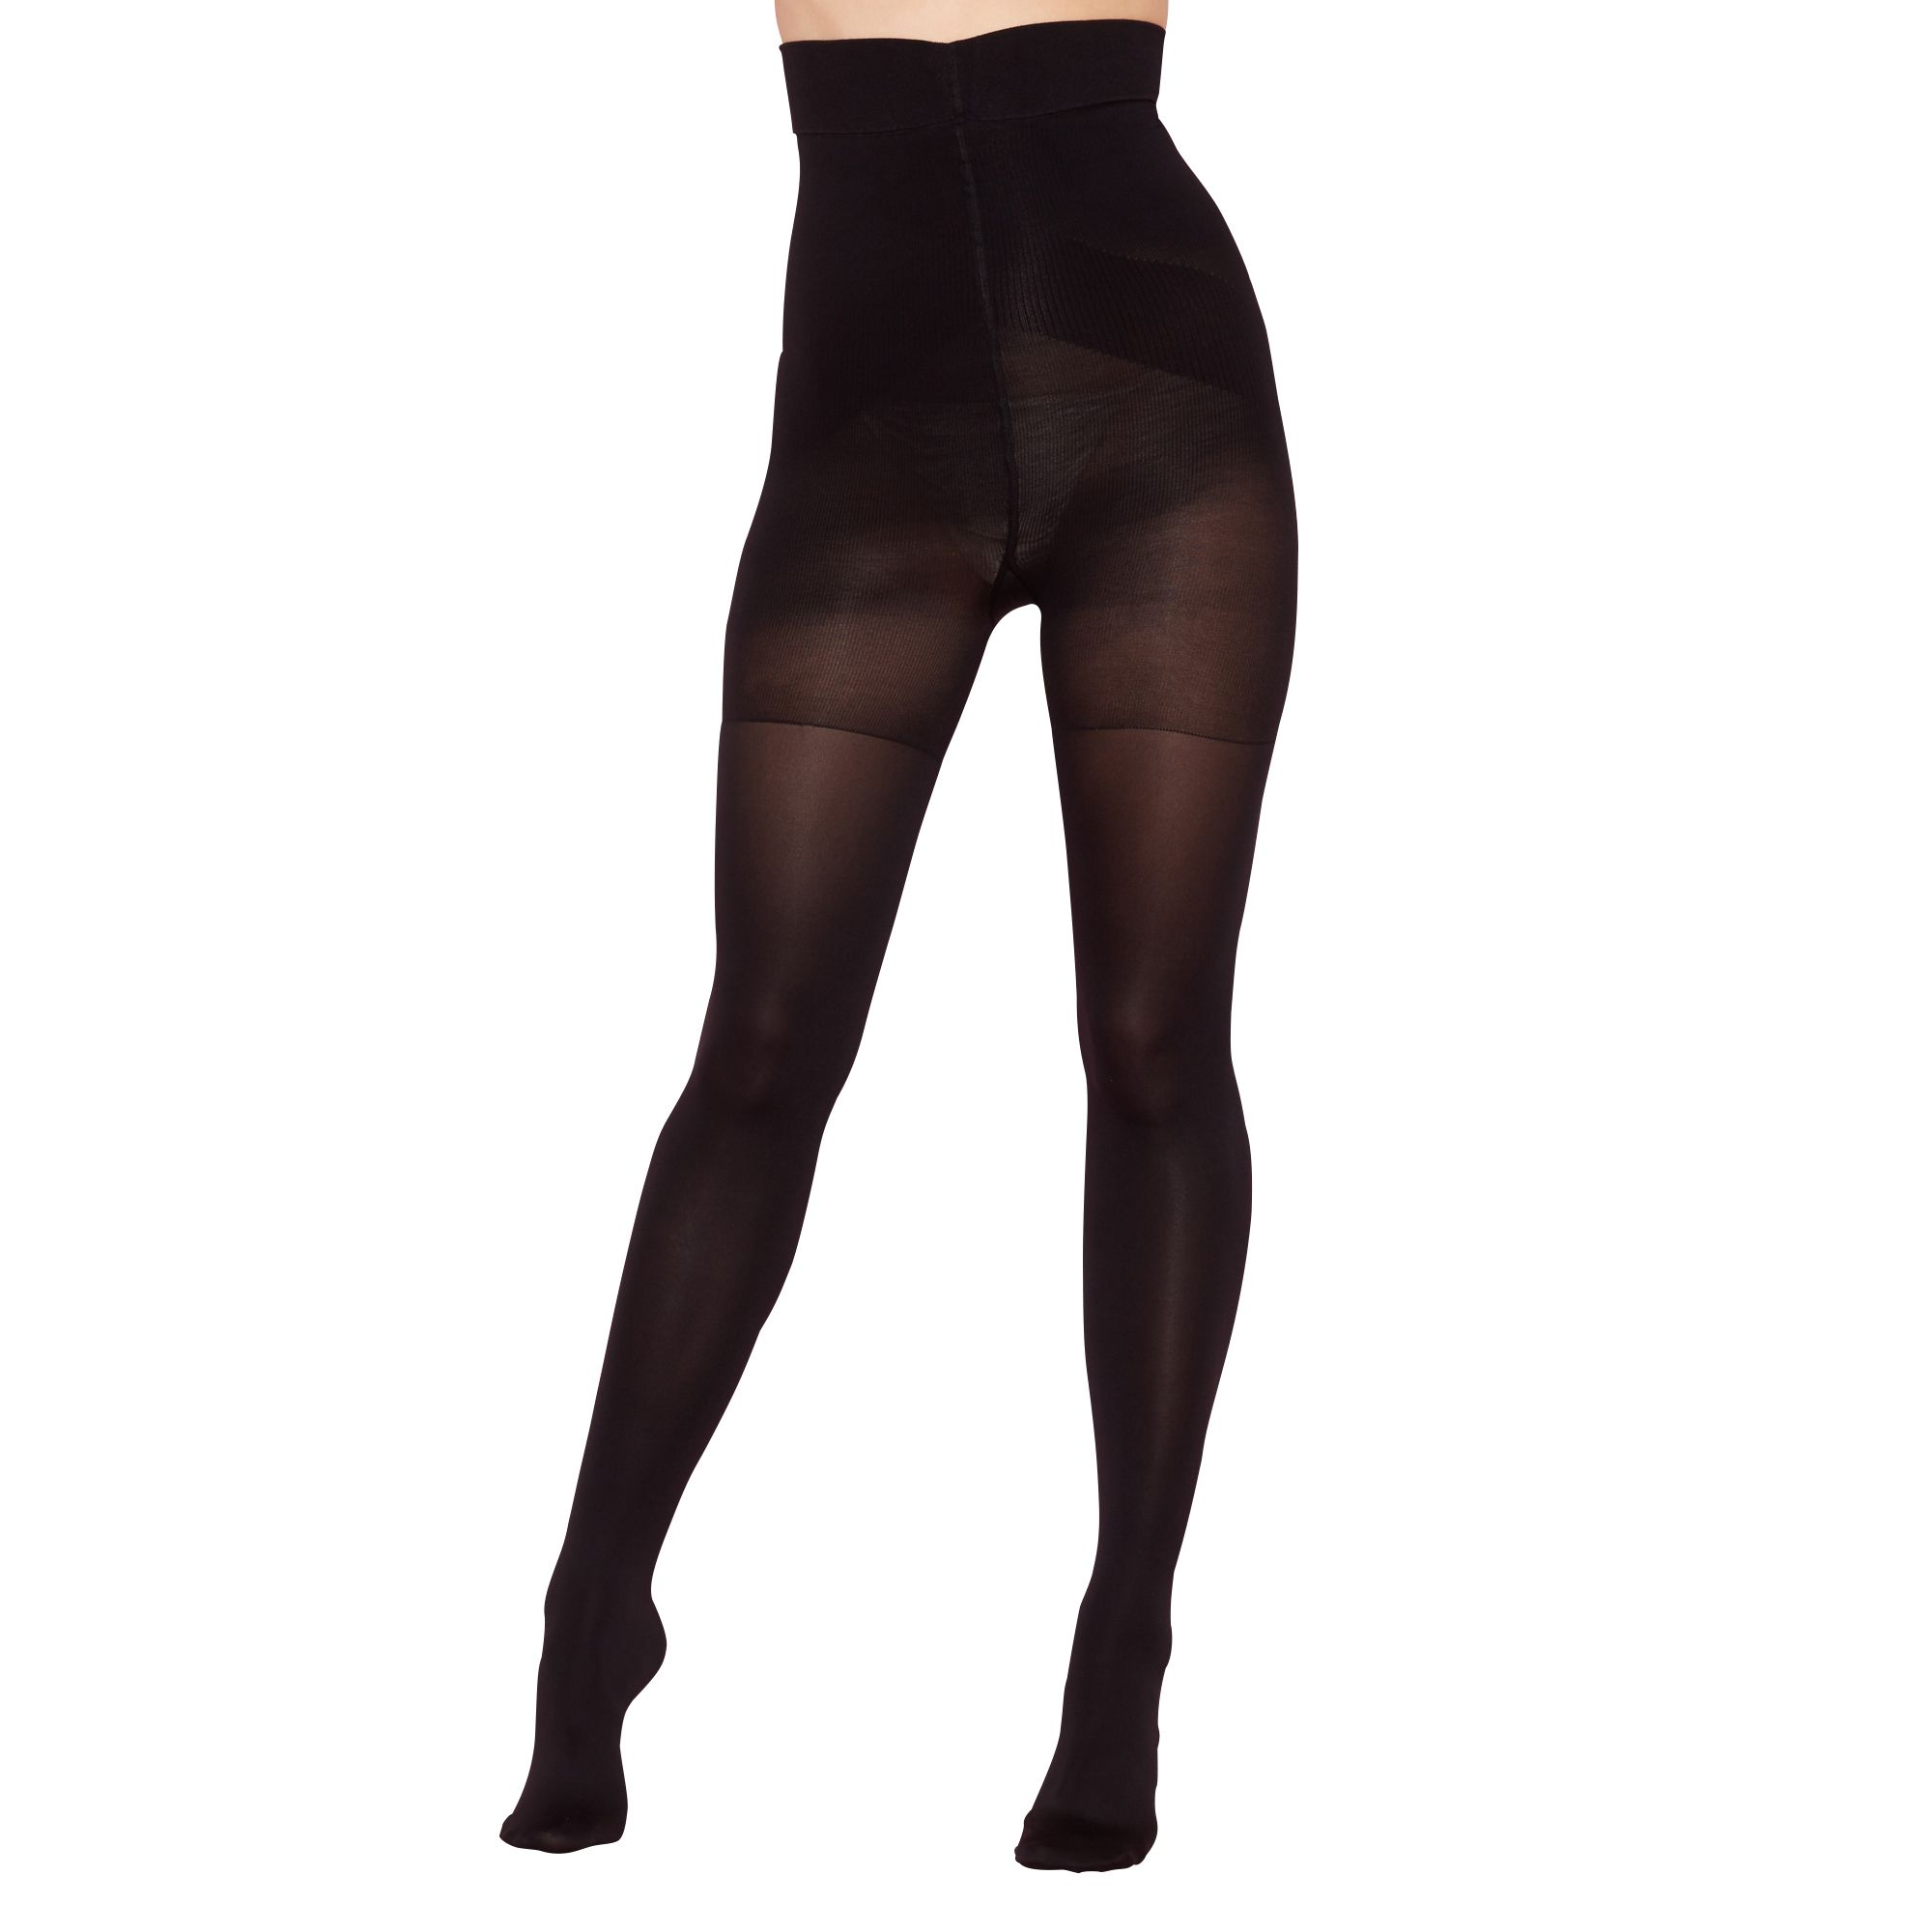 706b85a4dfc Wear bestselling Hanes Alive full support pantyhose -- and get comfortable  support plus sheer beauty